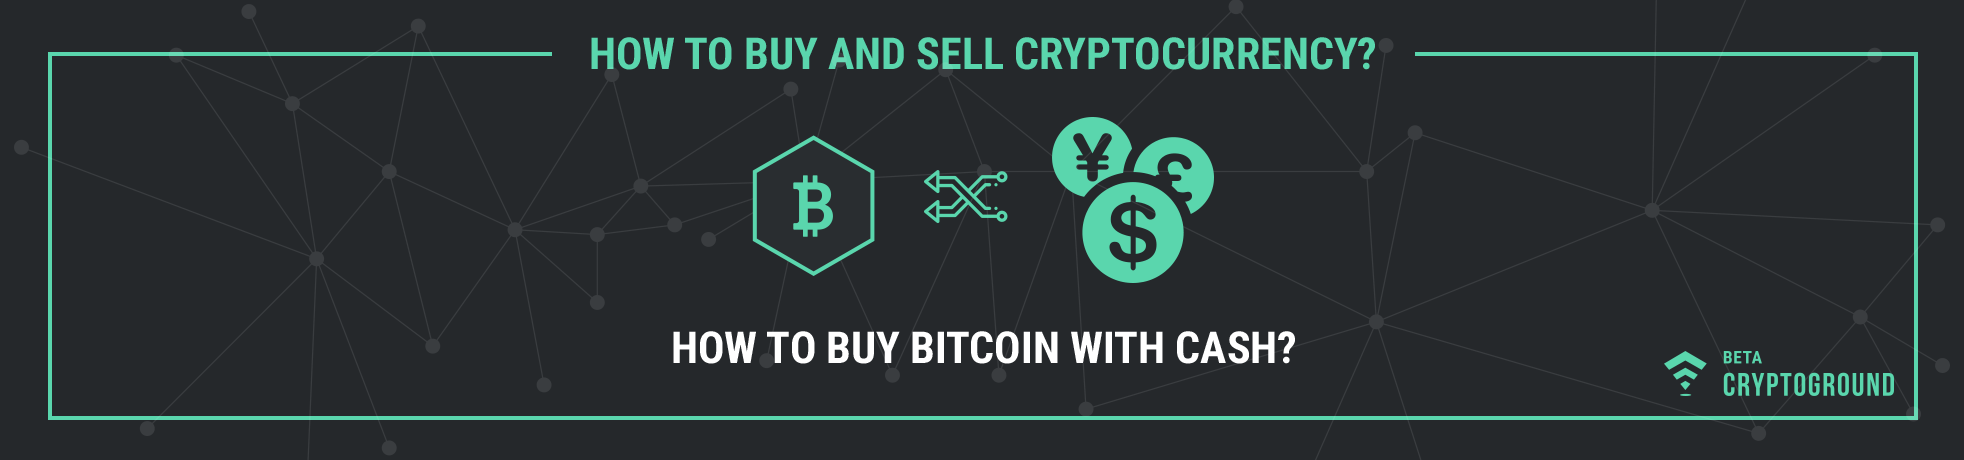 How to Buy Bitcoin with Cash?